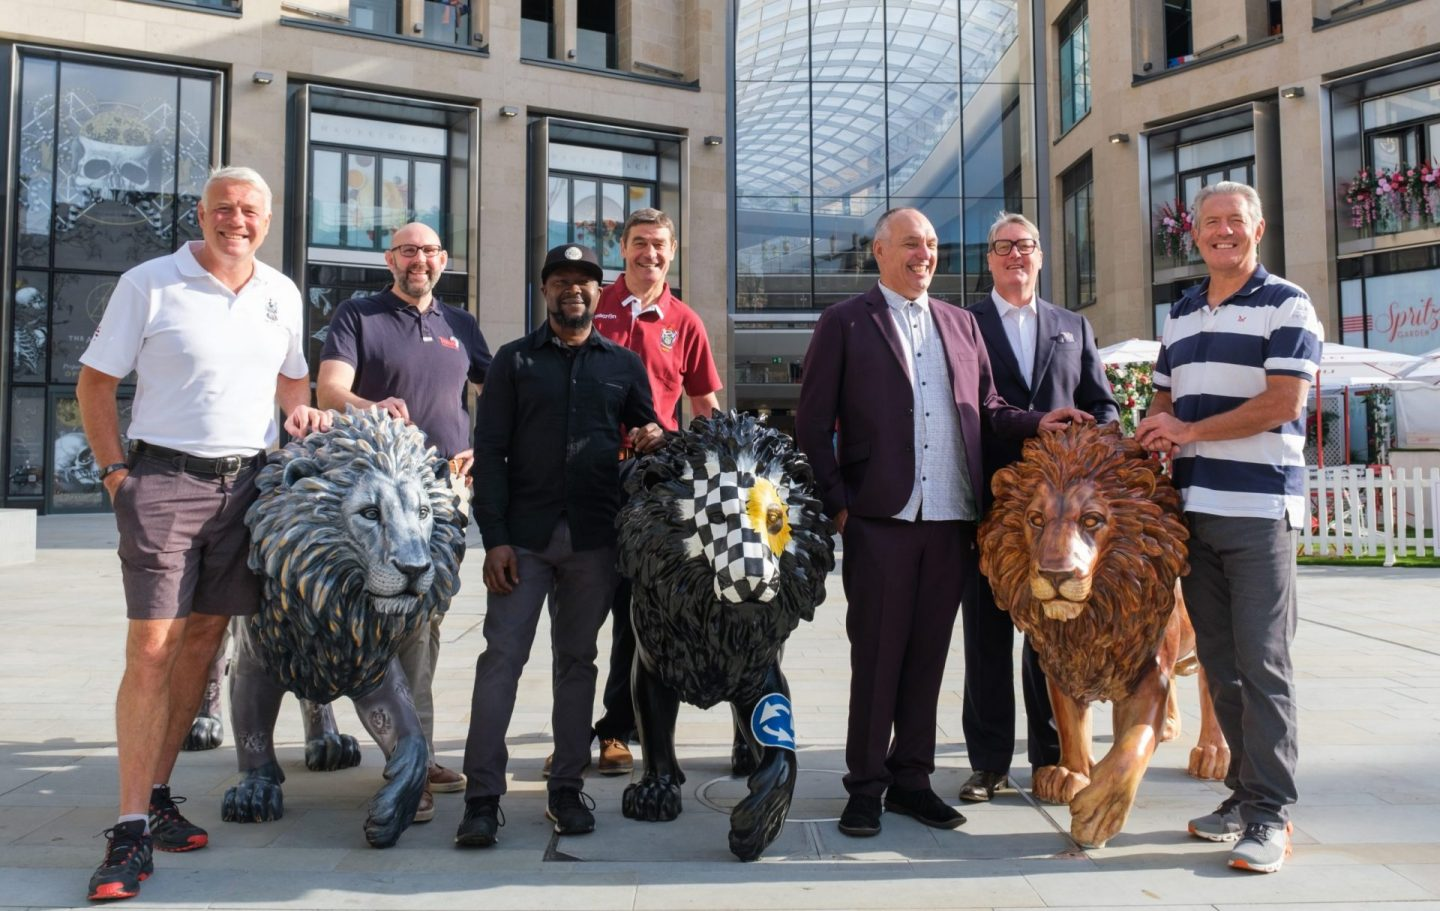 At Edinburgh's St James's Quarter three lions were welcomed by (L-R) rugby's Scott Hastings, Tusk's Dan Bucknell, artist Ade Adesina, rugby's Euan Kennedy, artist Adrian Wiszniewski, St James's Quarter's Nick Peel and rugby's Gavin Hastings